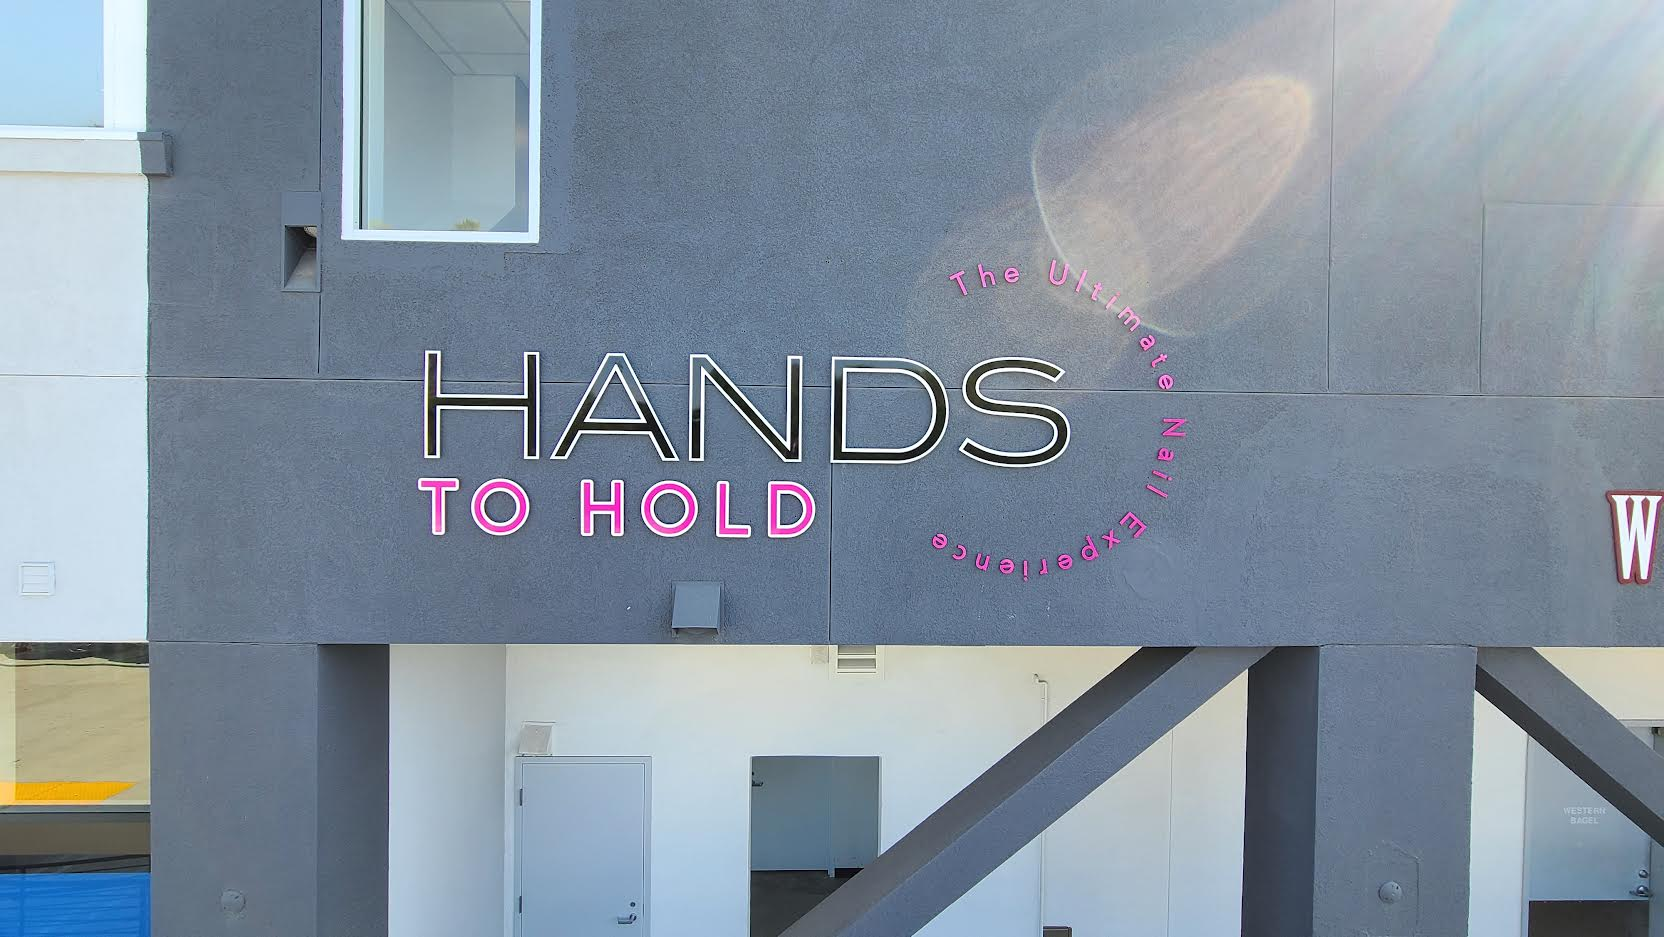 This is the salon sign for Hands to Hold's establishment in Encino Courtyard, it shows potential customers the caliber of the brand's styling services.